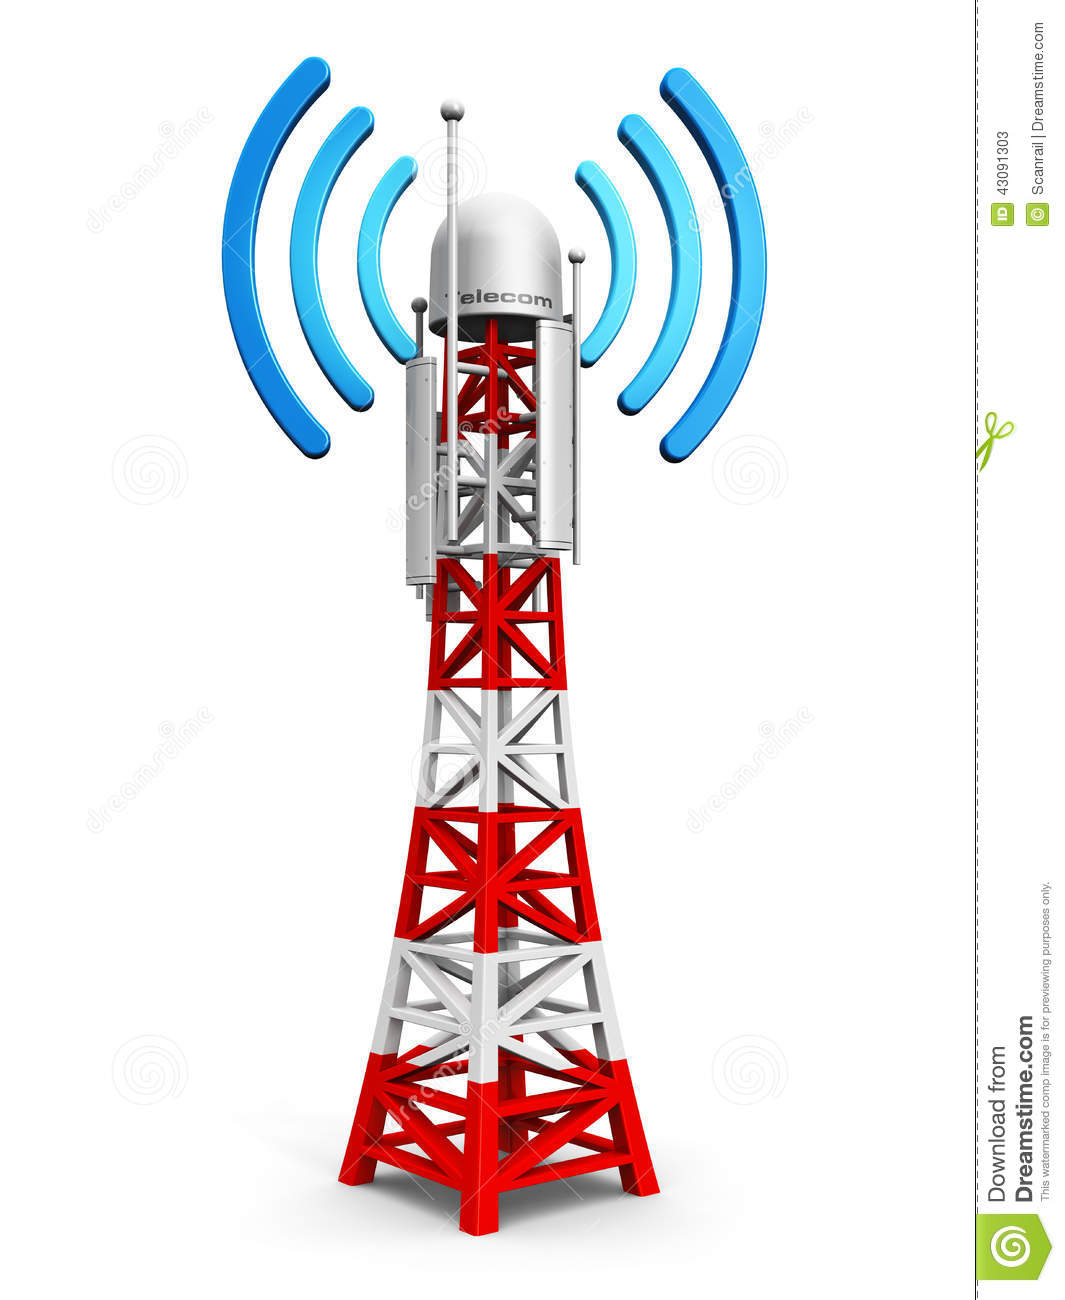 Cell site clipart vector black and white Telecom tower clipart - ClipartFest vector black and white